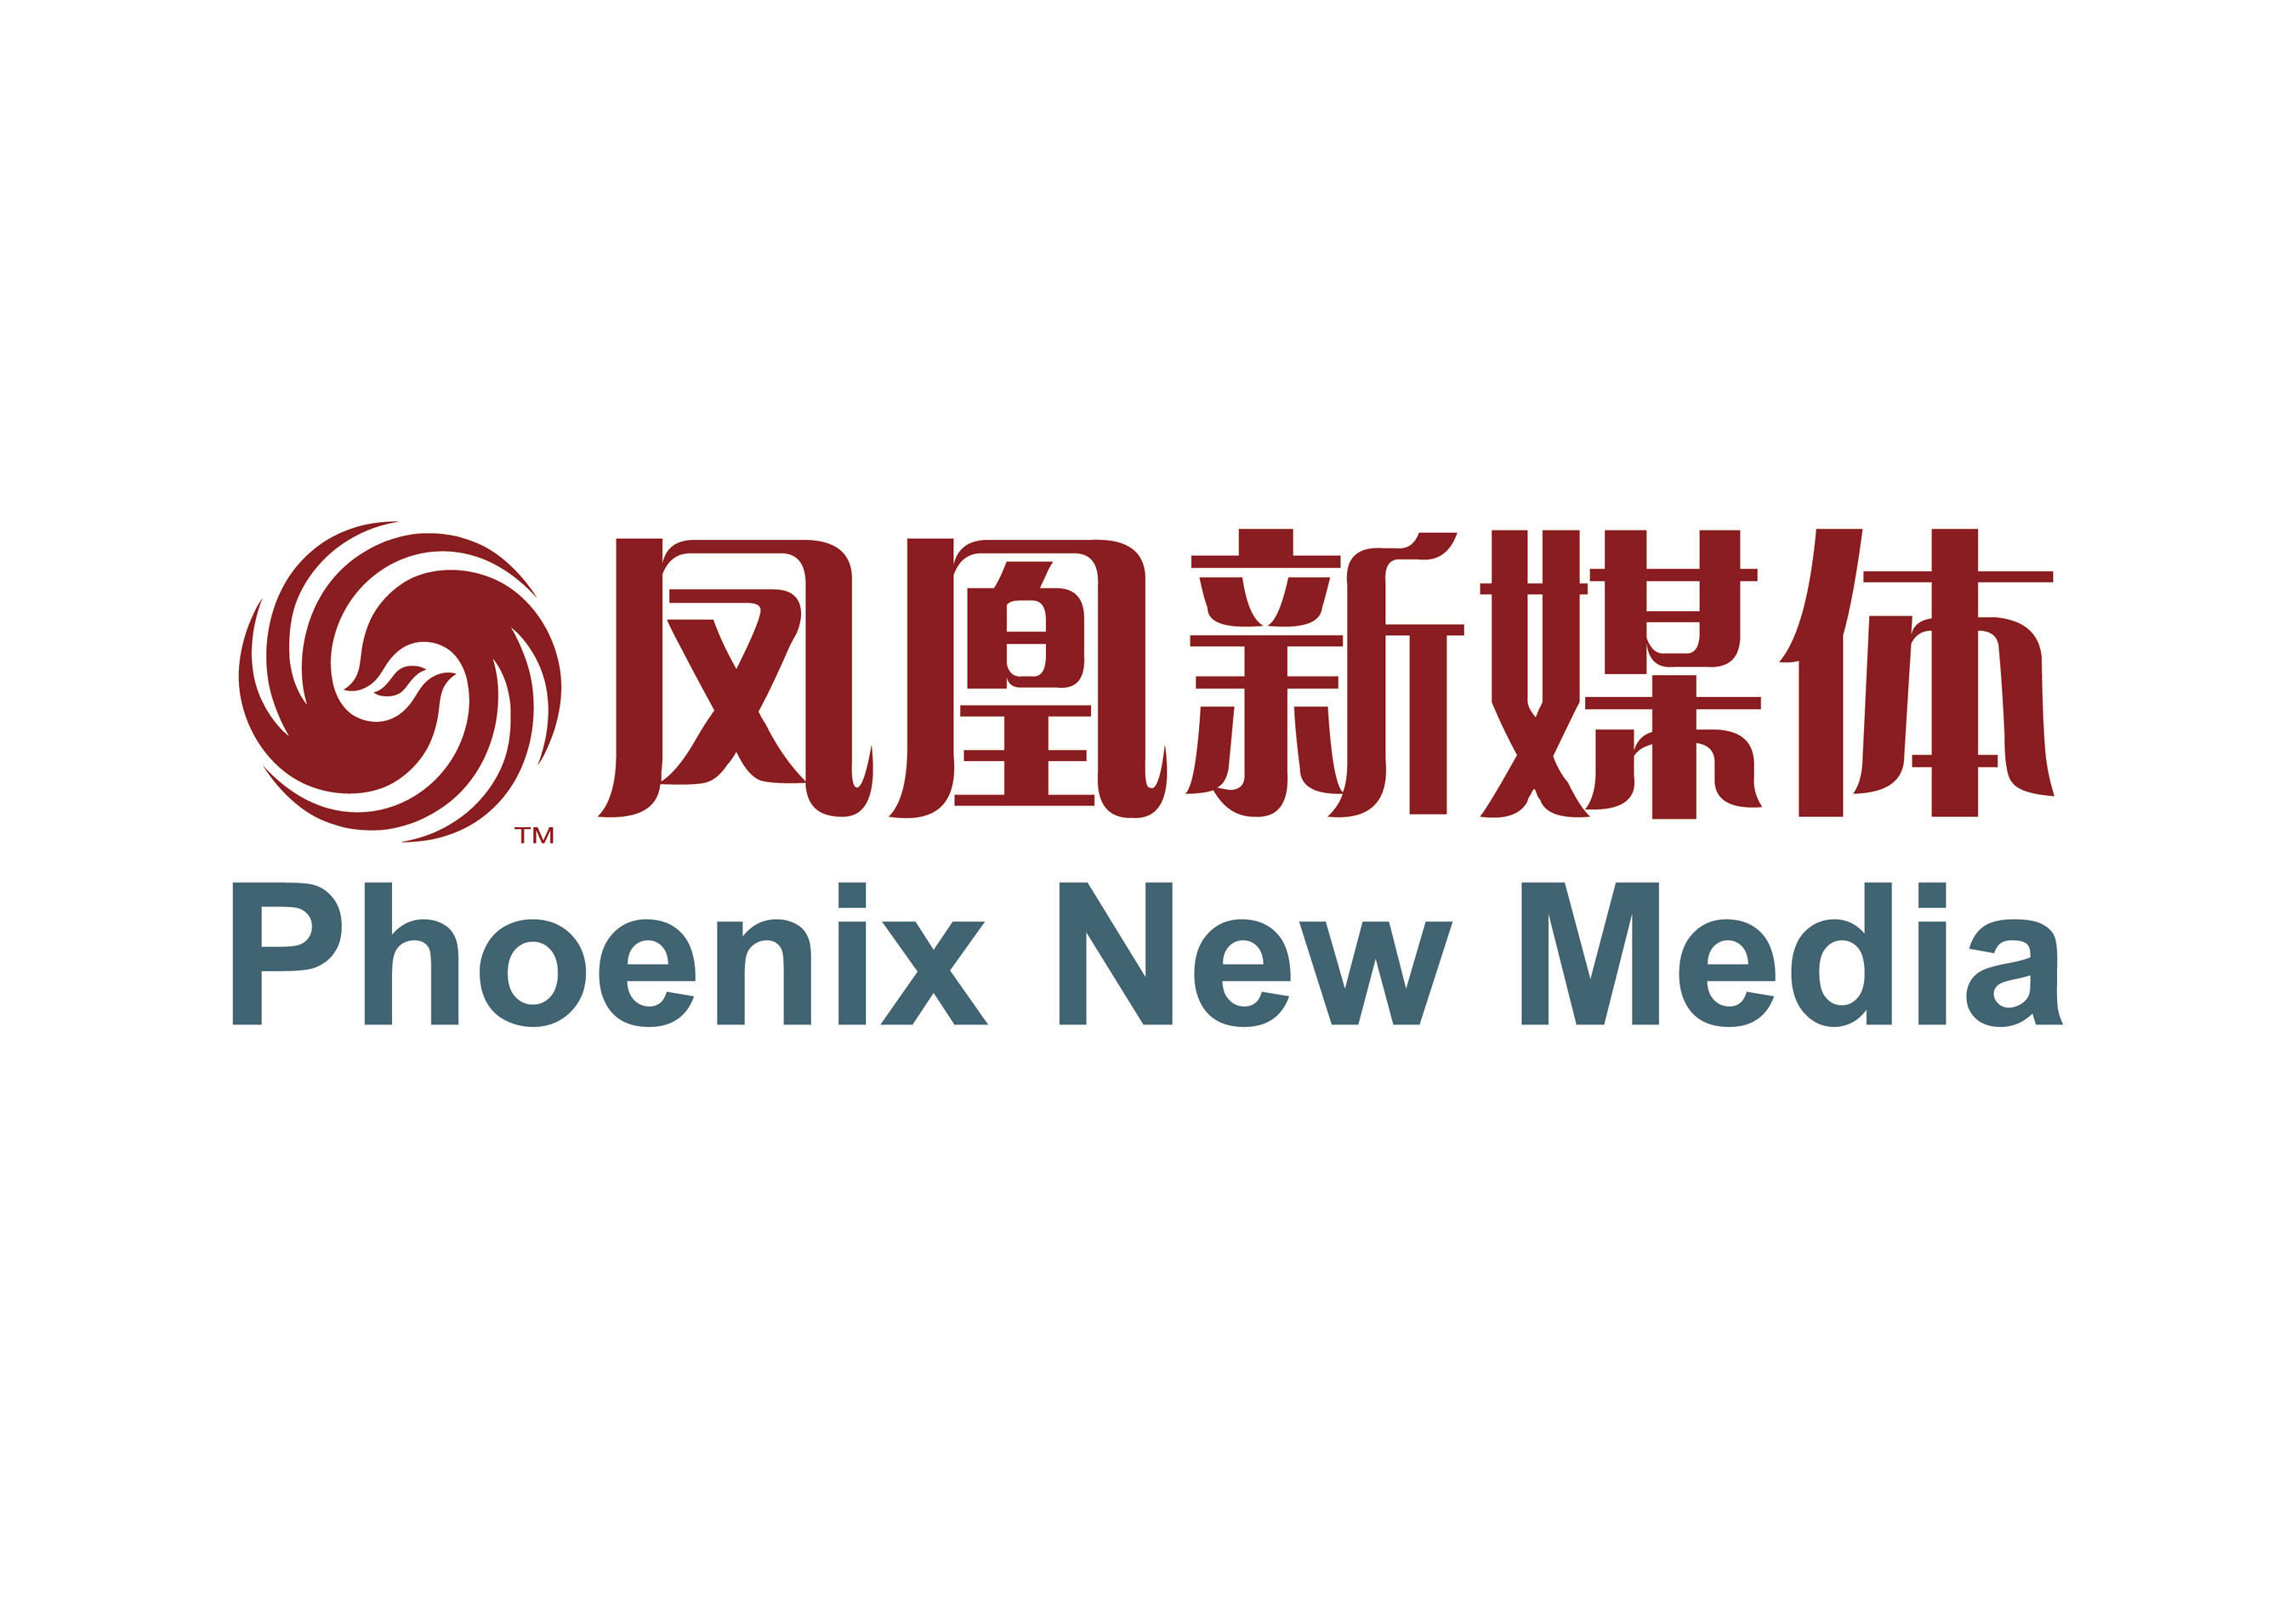 Phoenix New Media to Hold 2015 Annual General Meeting on August 18, 2015